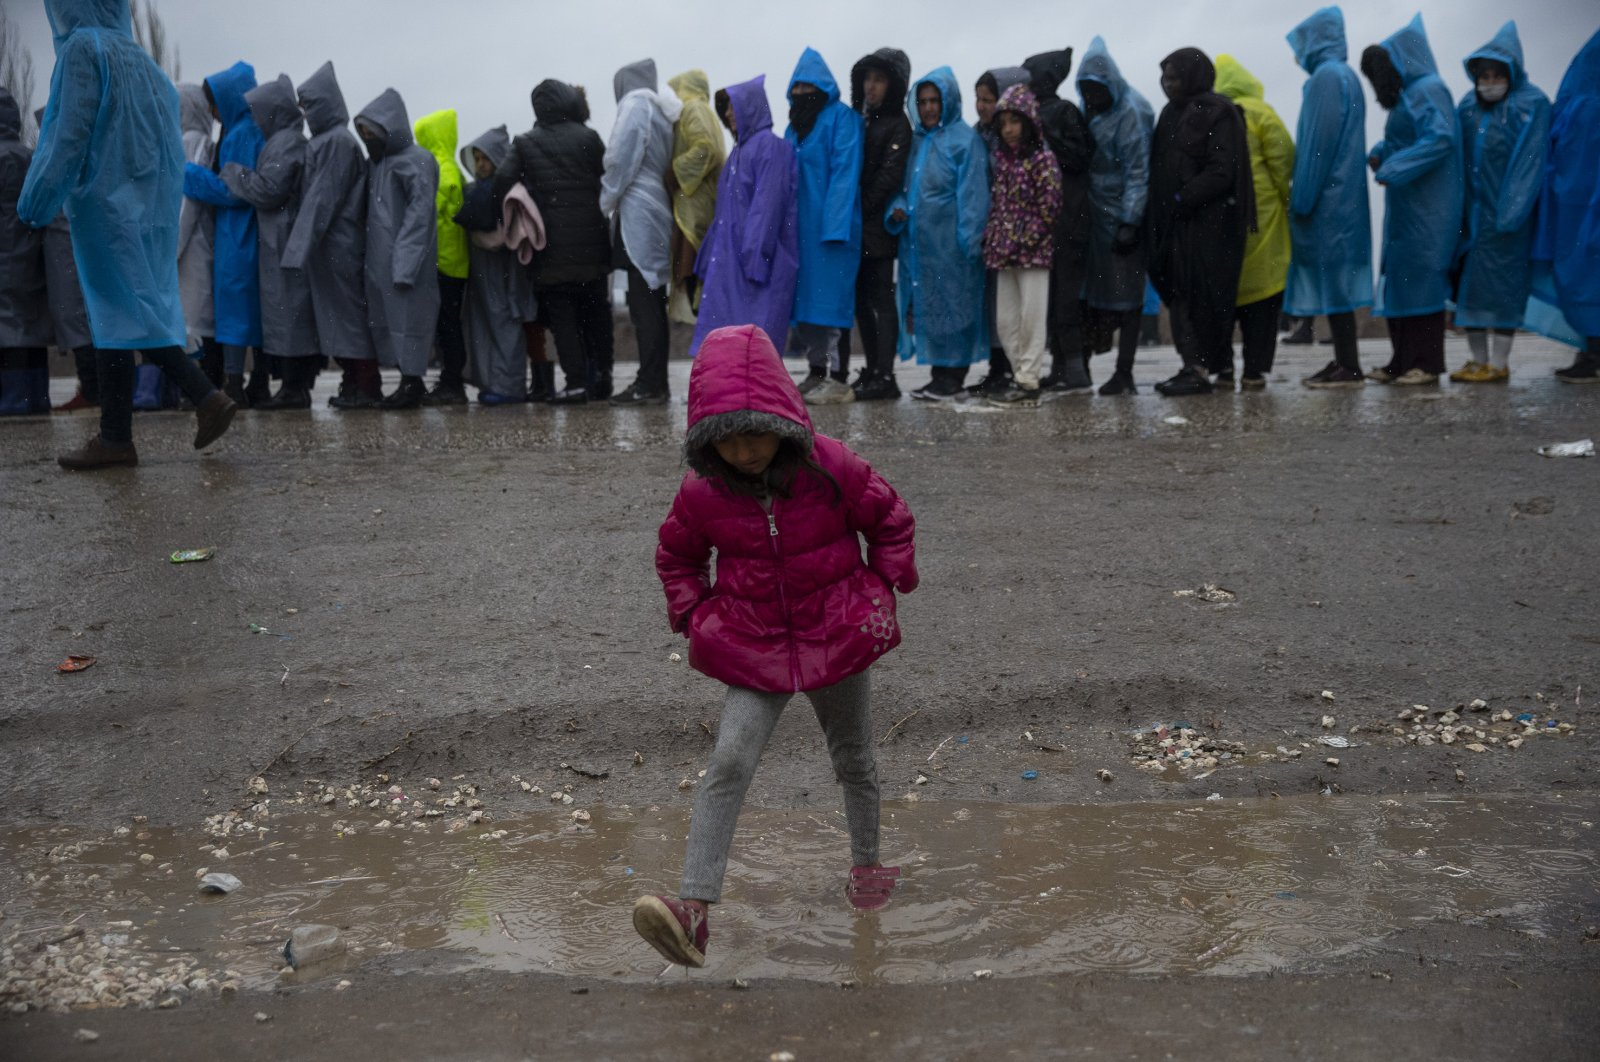 A child walks in the mud as asylum-seekers continue to wait at the Turkish-Greek border despite harsh weather conditions, March 15, 2020 (AA Photo)